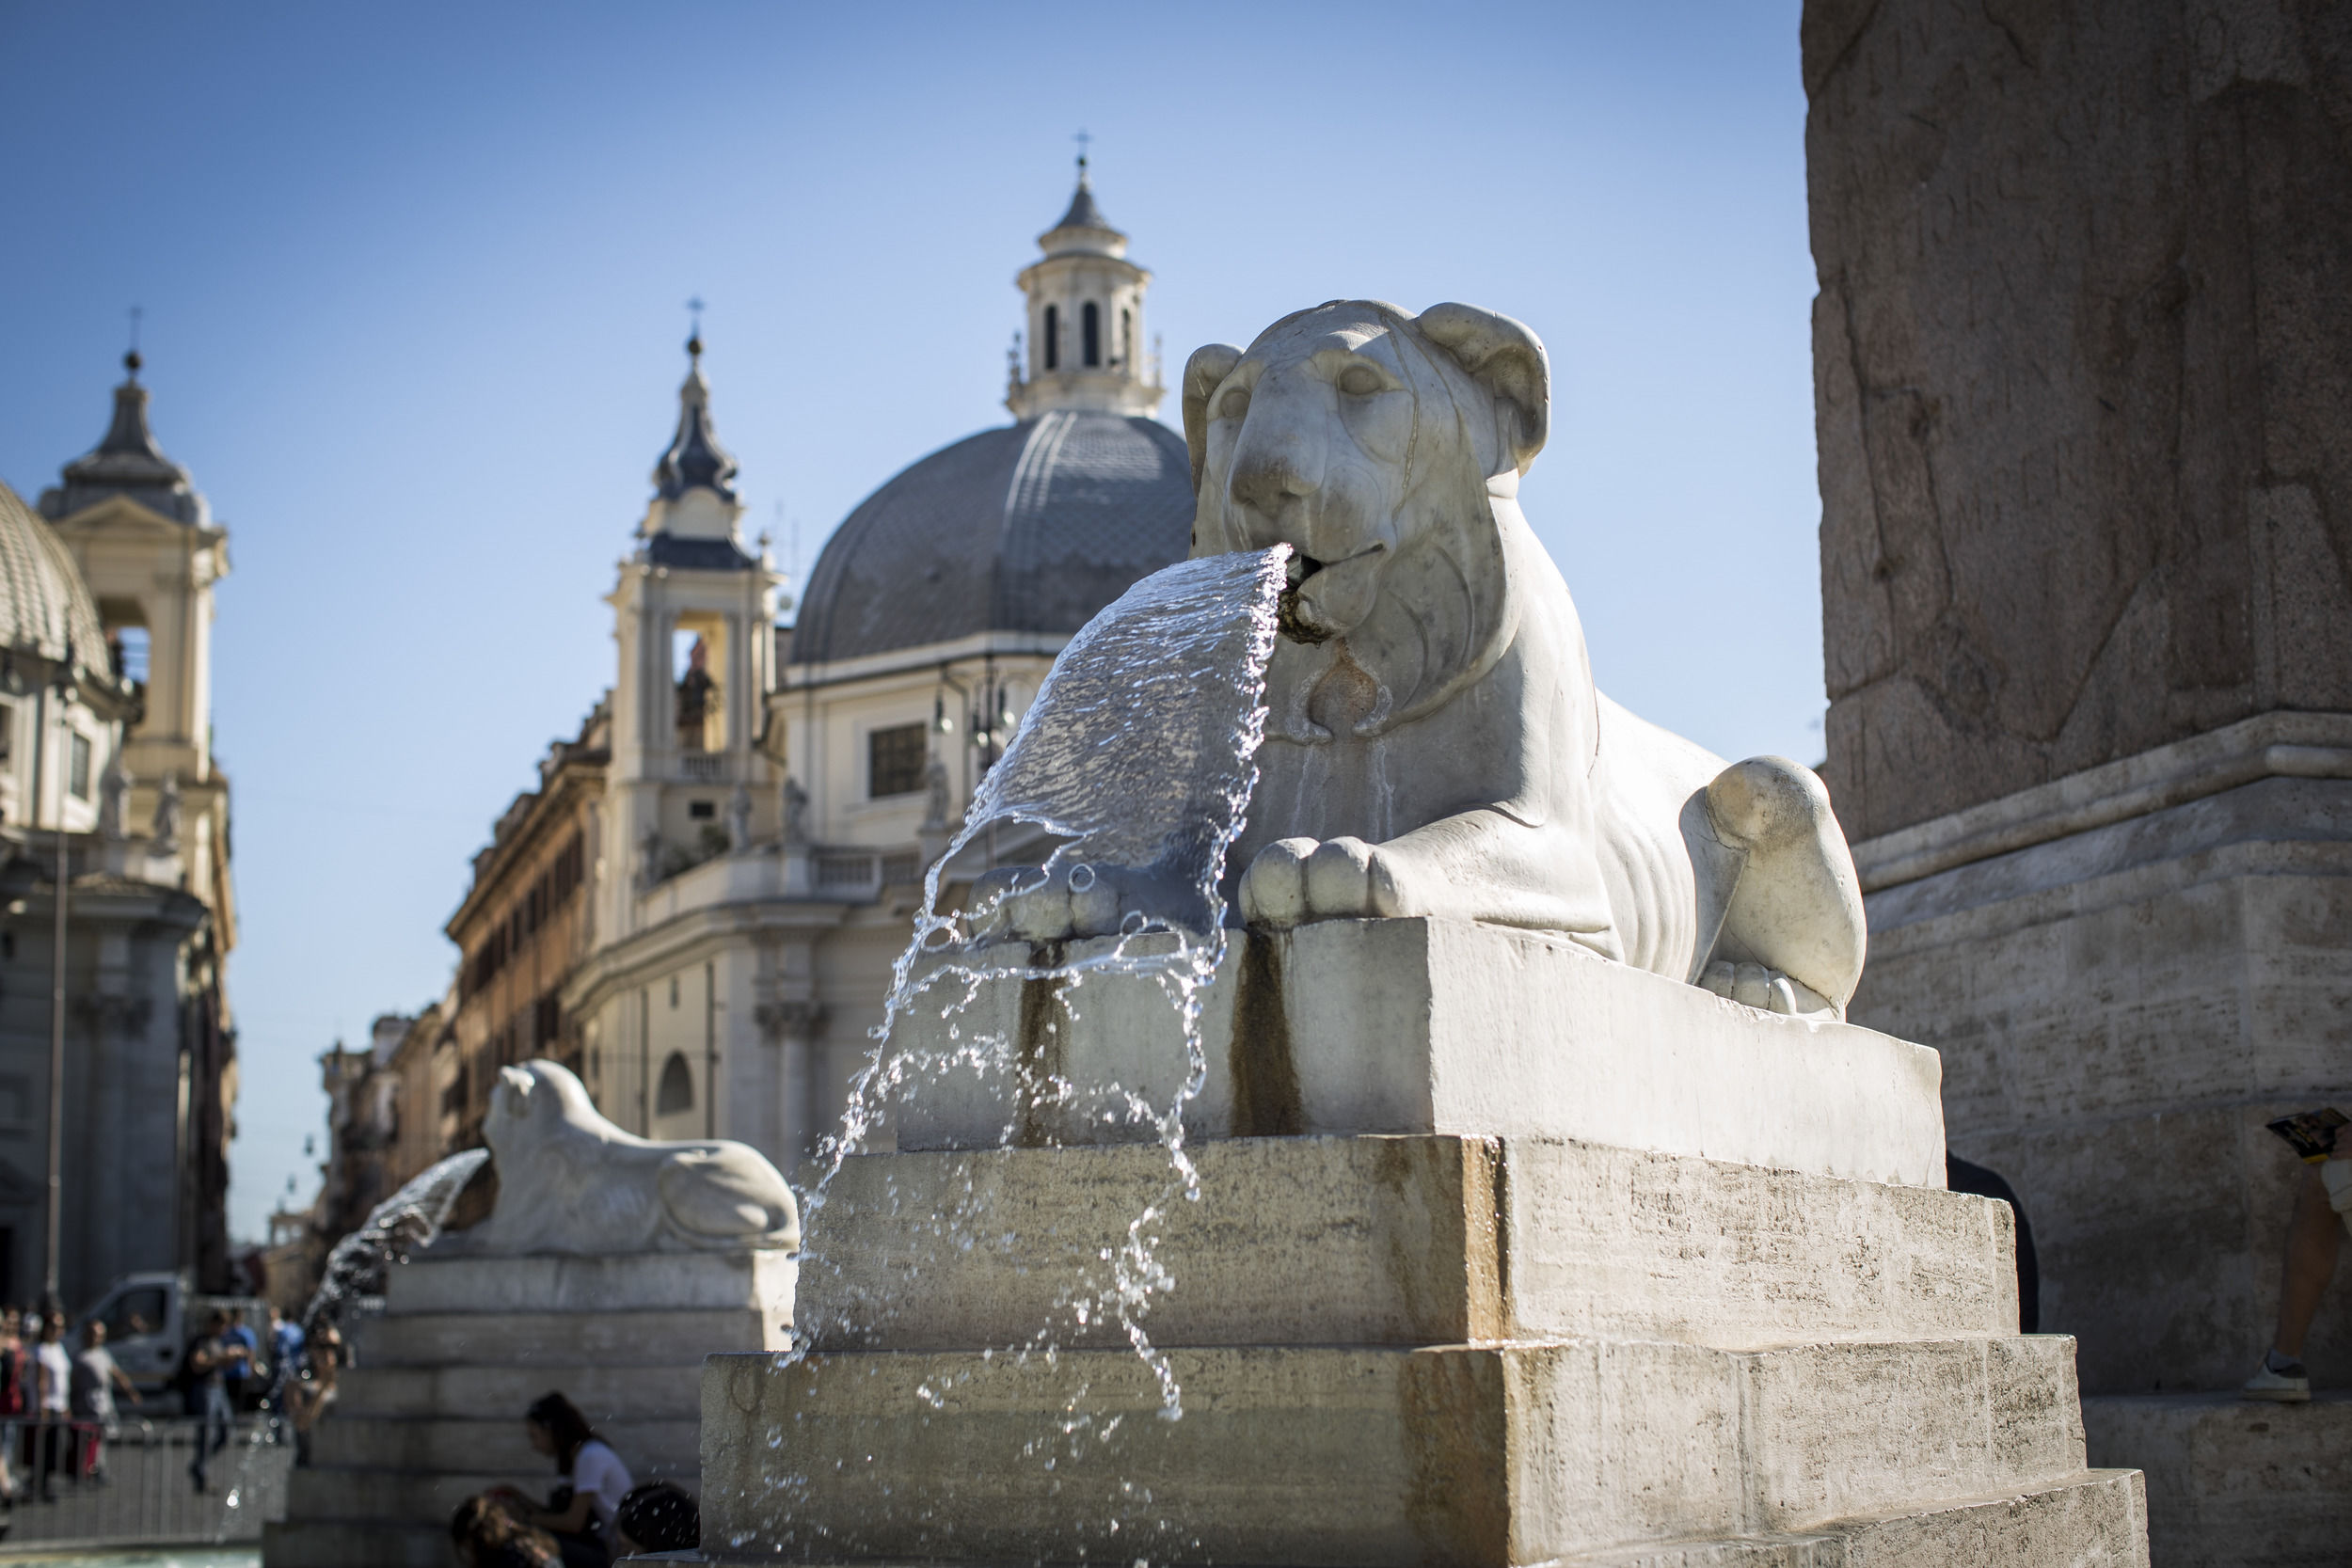 A lion shaped fountain spitting water in central Rome.